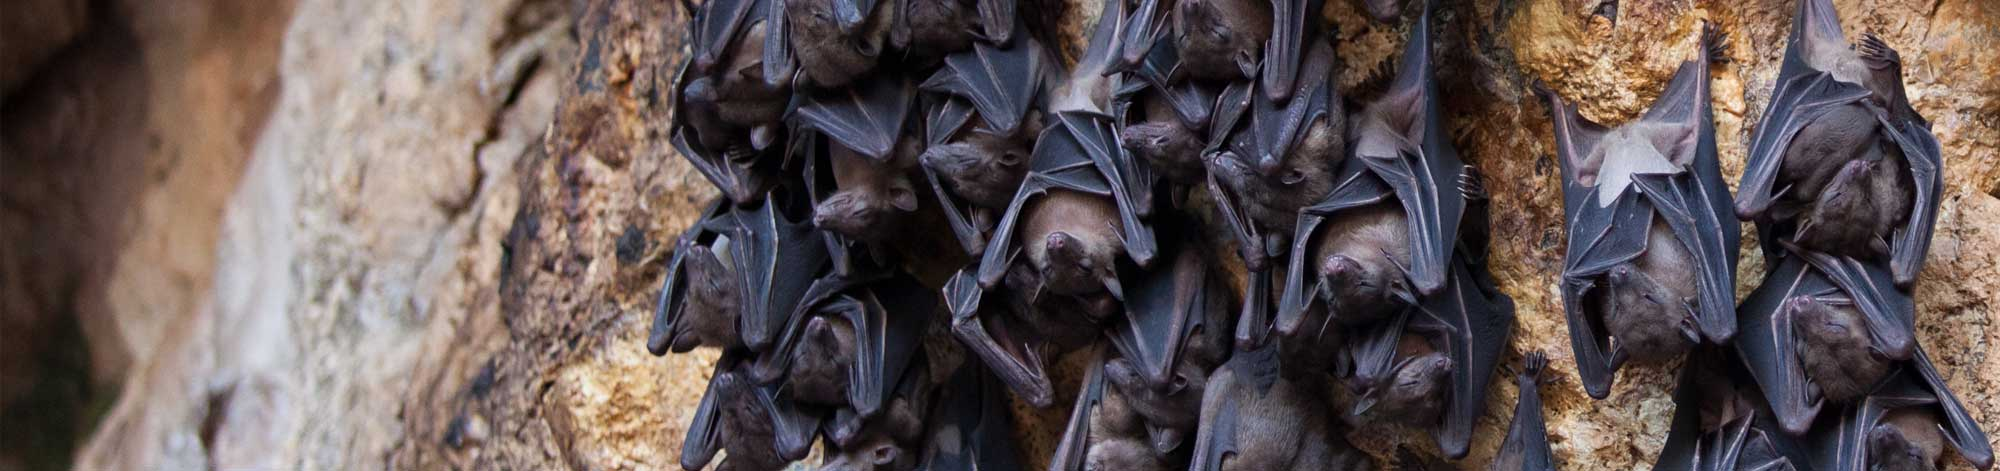 group of hanging bats